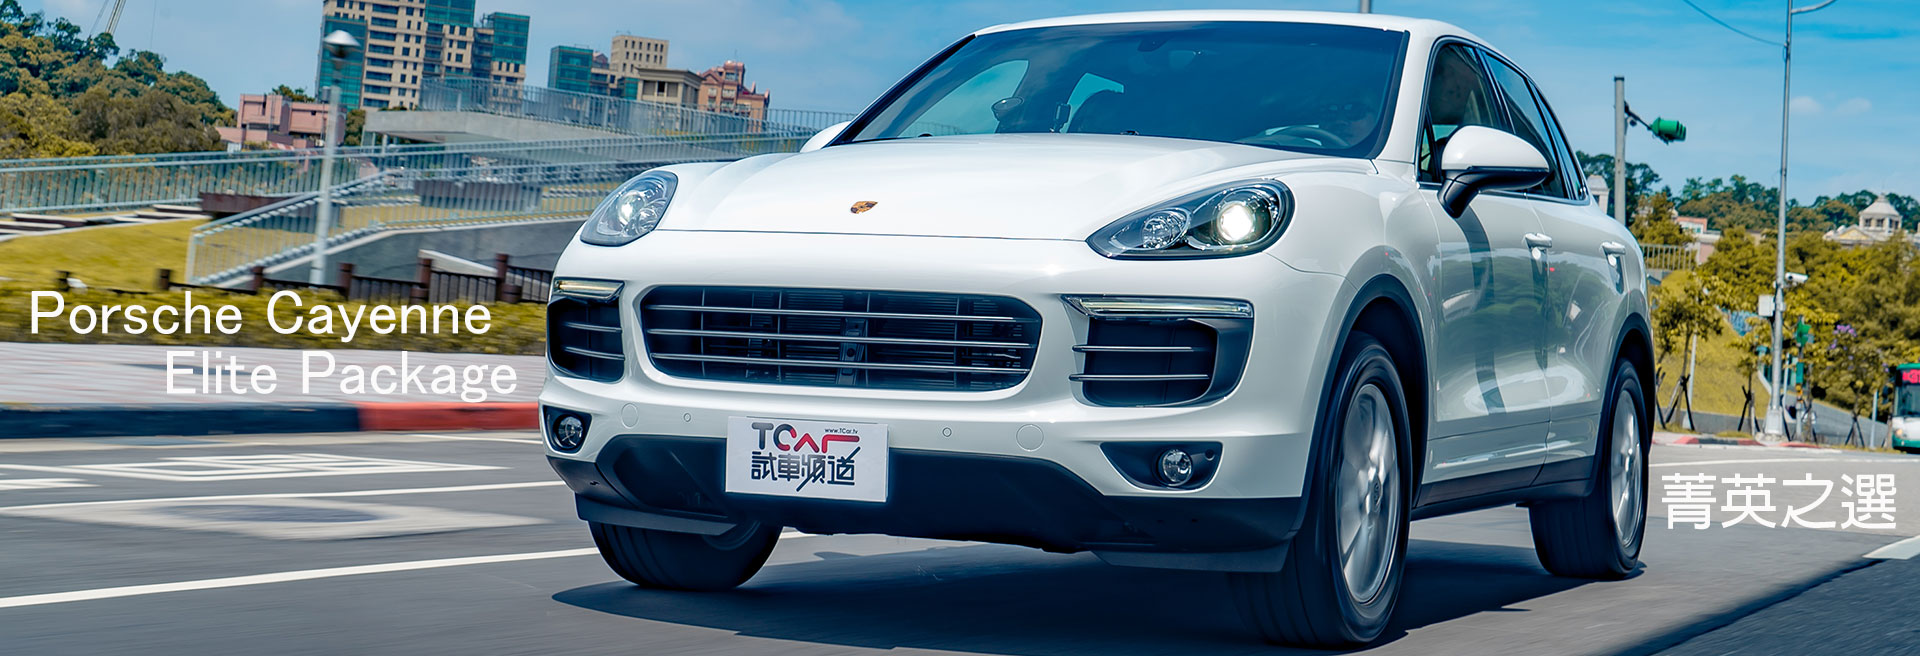 菁英之選 Porsche Cayenne Elite Package